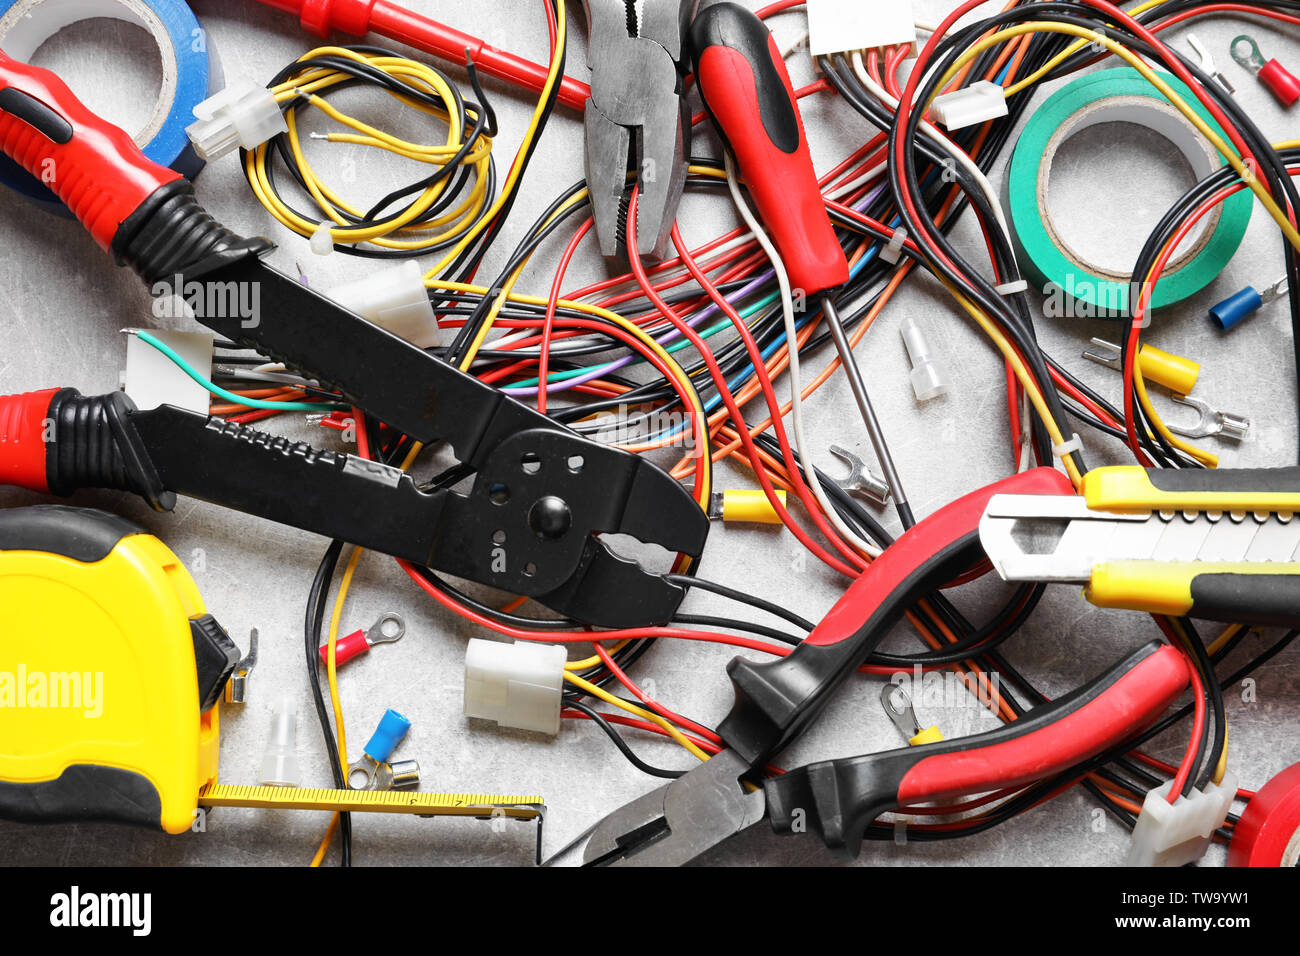 Electrical Tools High Resolution Stock Photography And Images Alamy